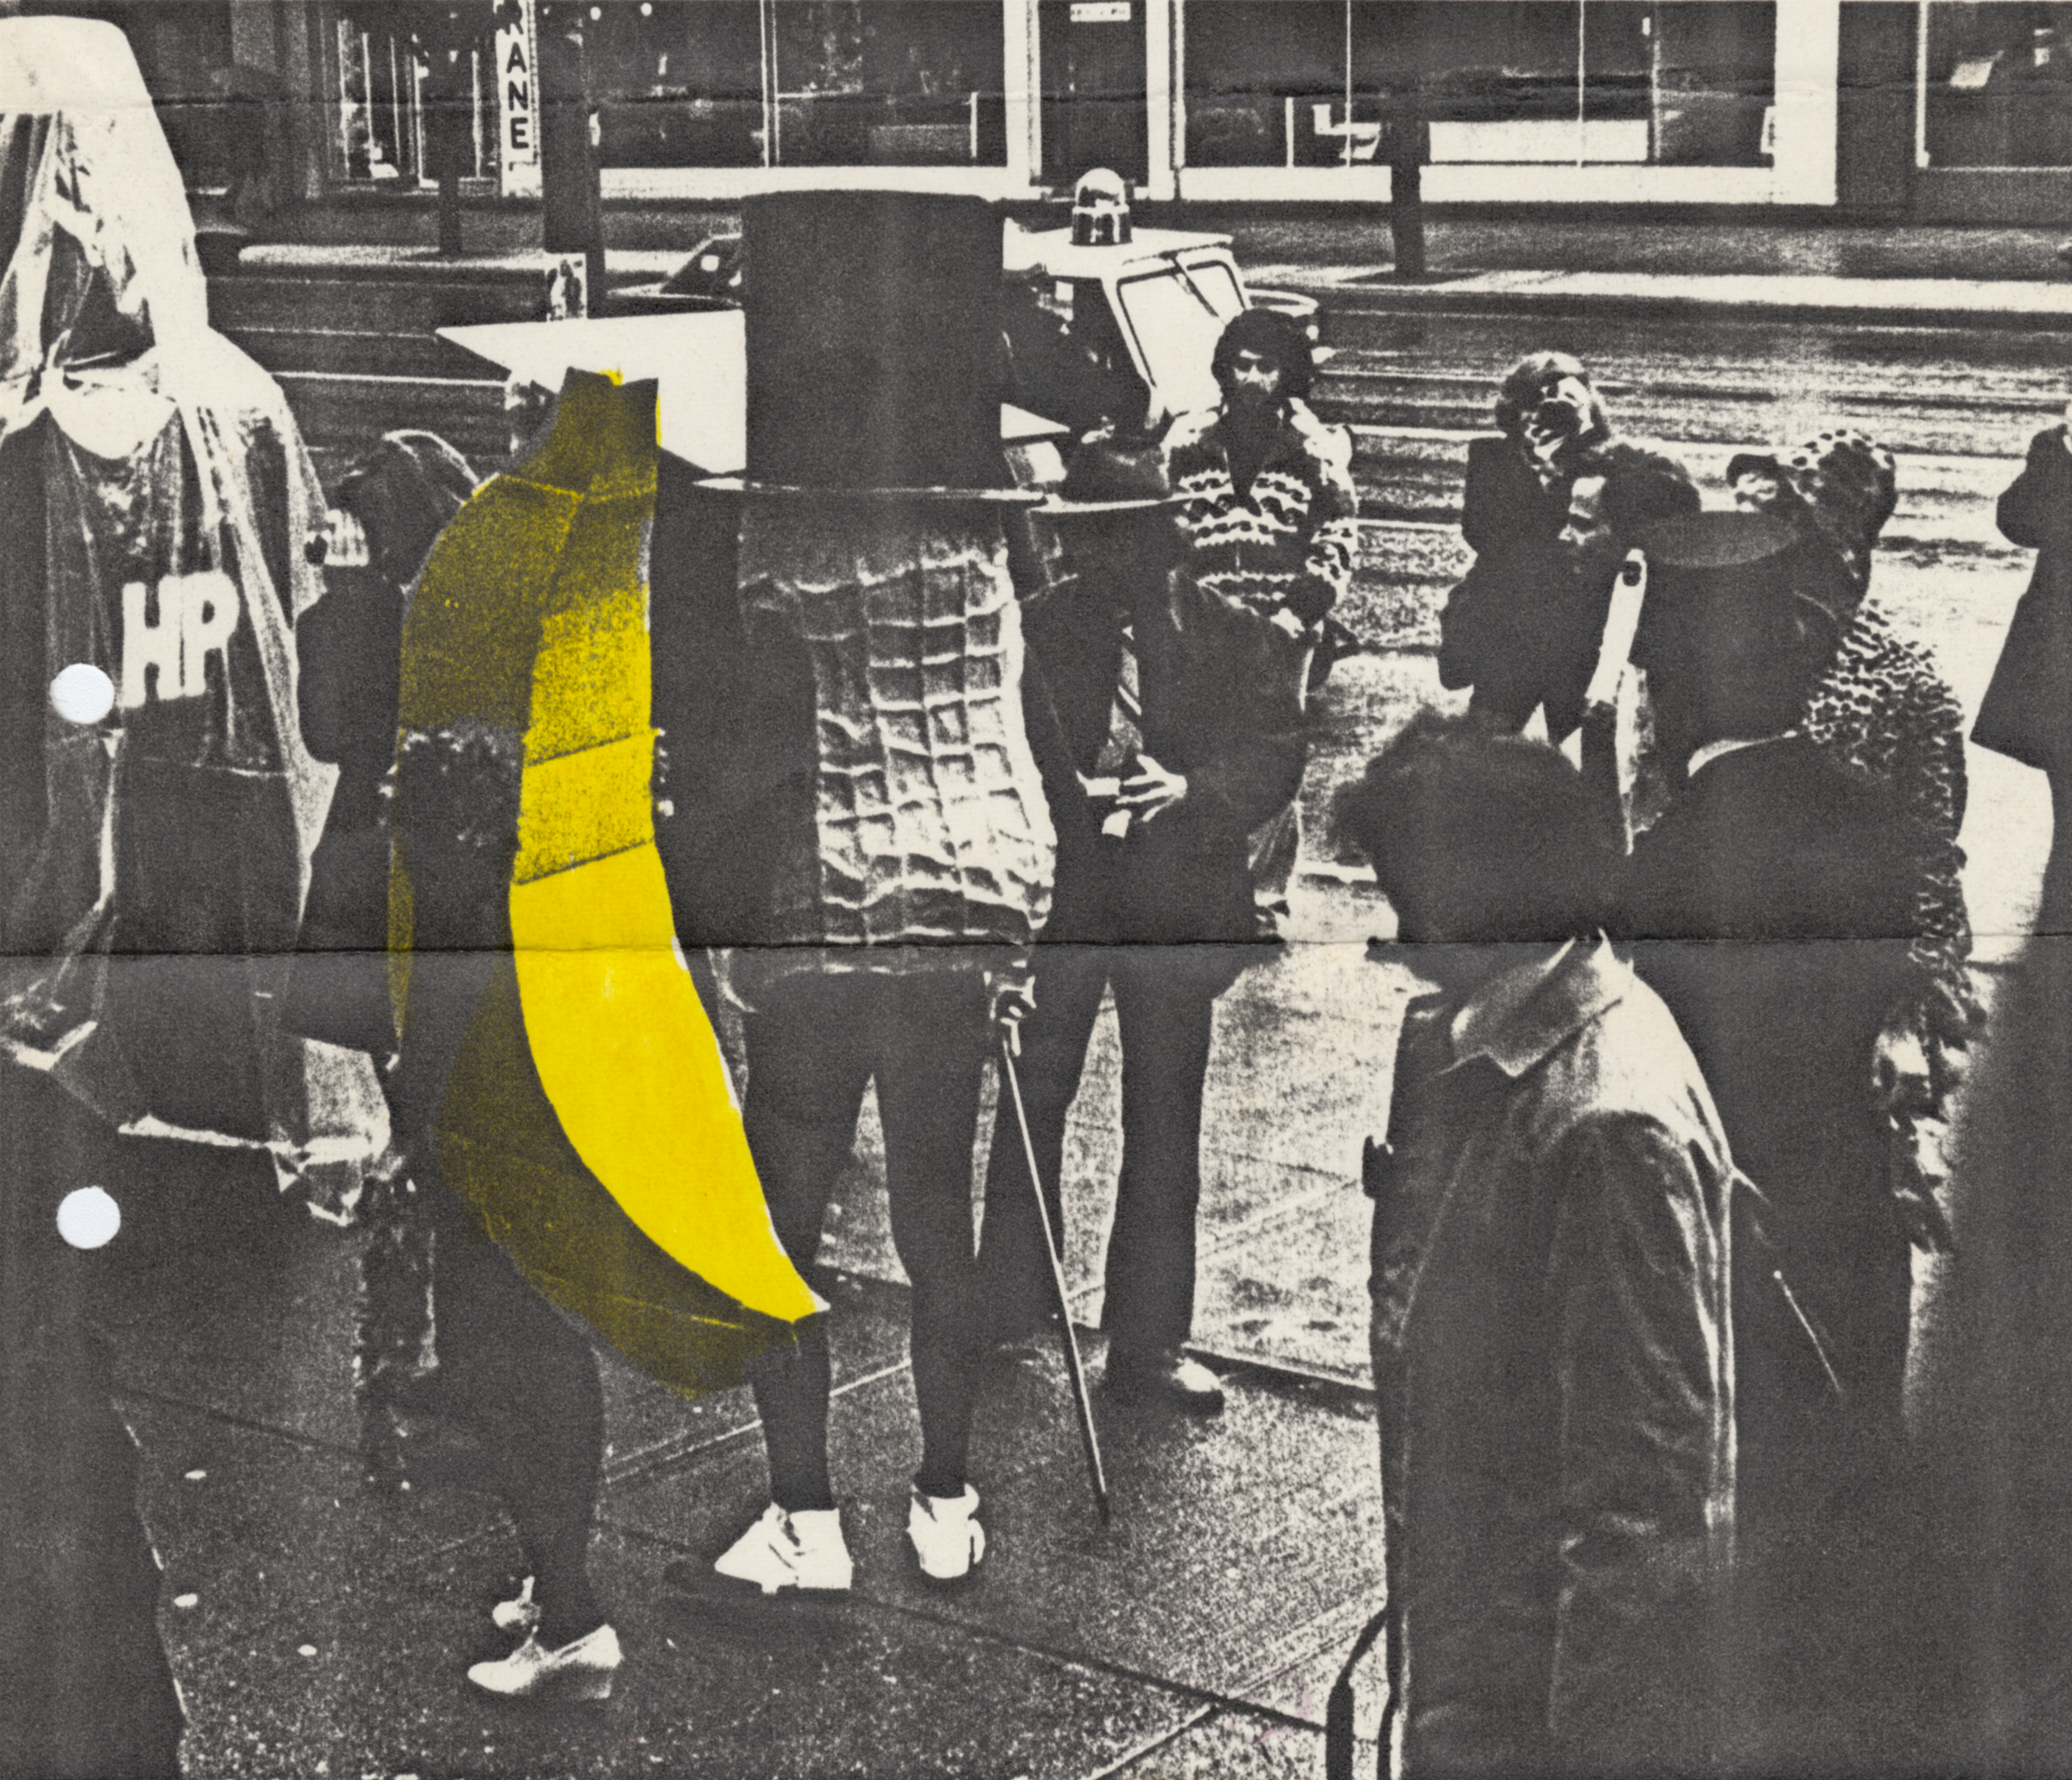 This black-and-white photograph shows a crowd of people around two costumed figures seen from the back. One is dressed as a banana and the other as a peanut.